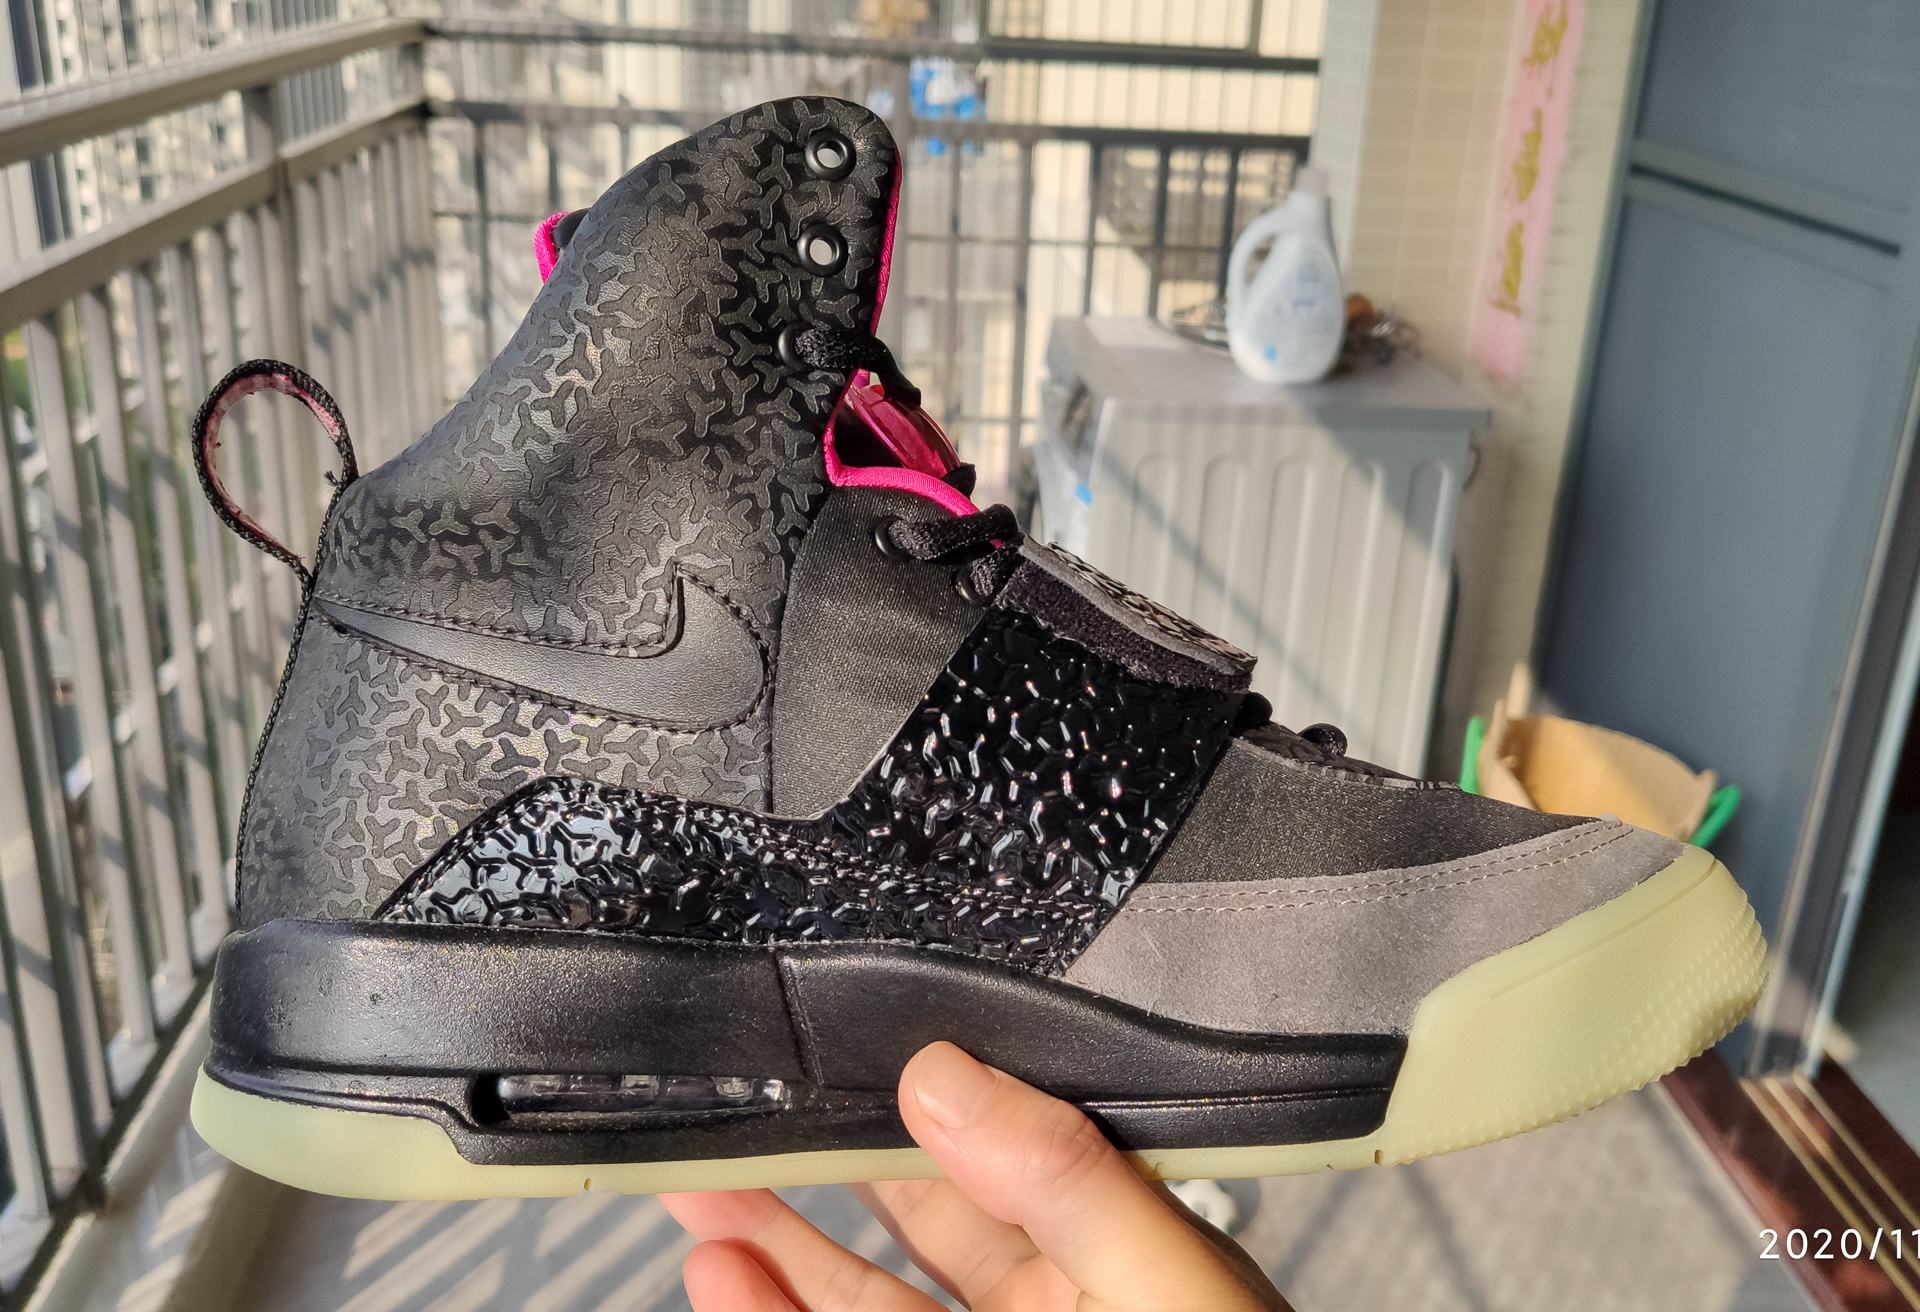 Air Yeezy Black/Pink improved in 2020